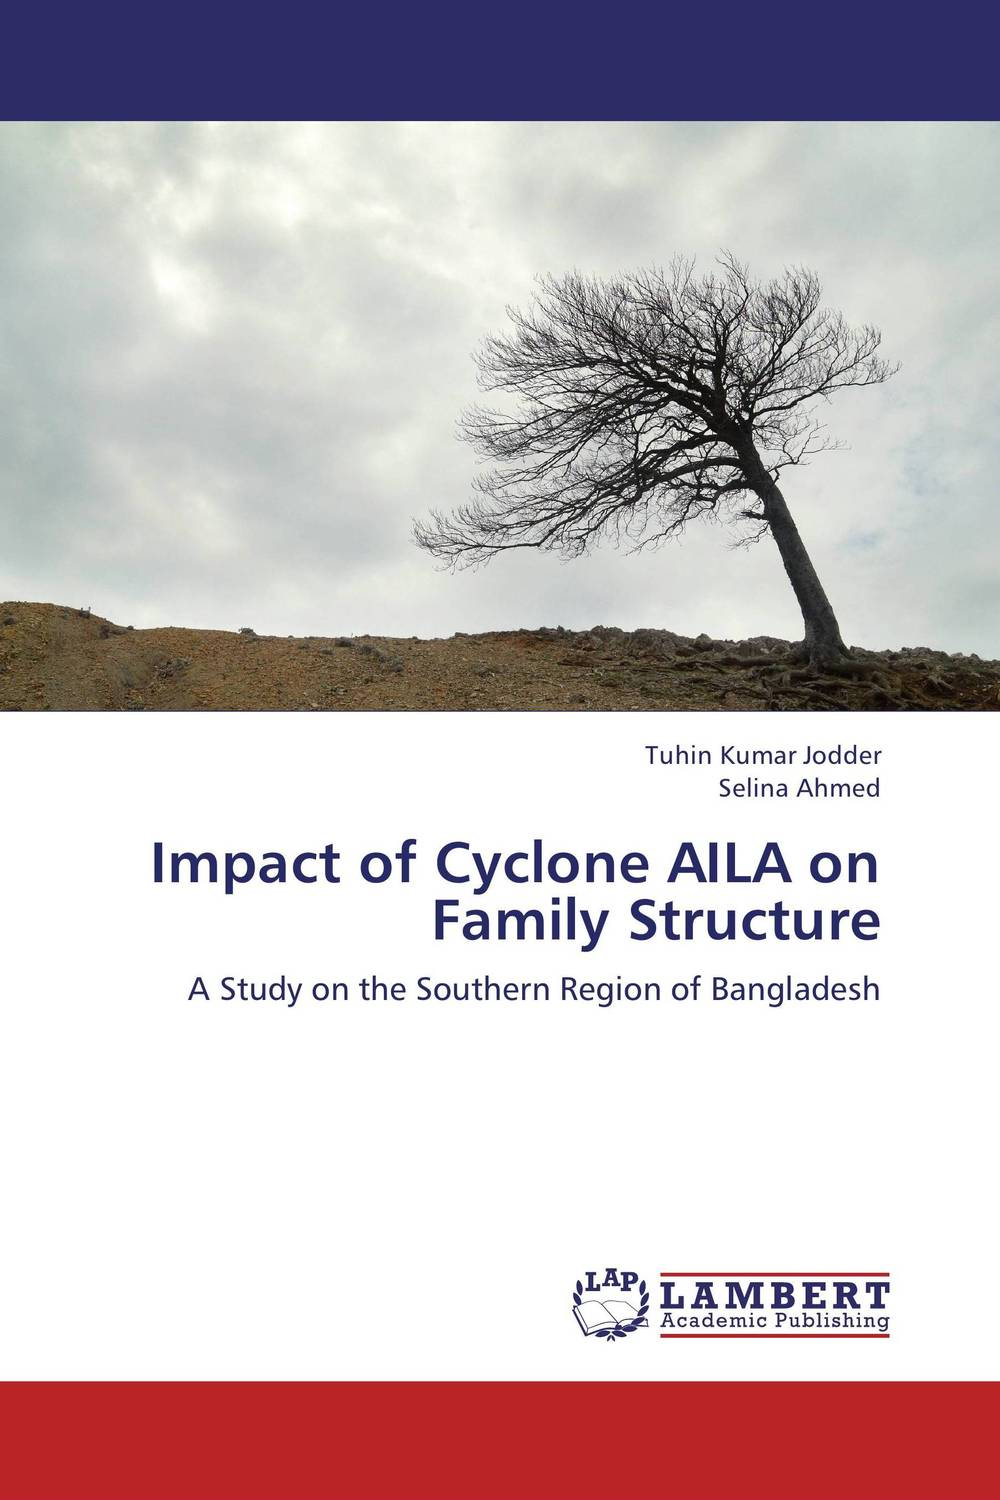 Impact of Cyclone AILA on Family Structure impacts of cyclone on coastal livelihood